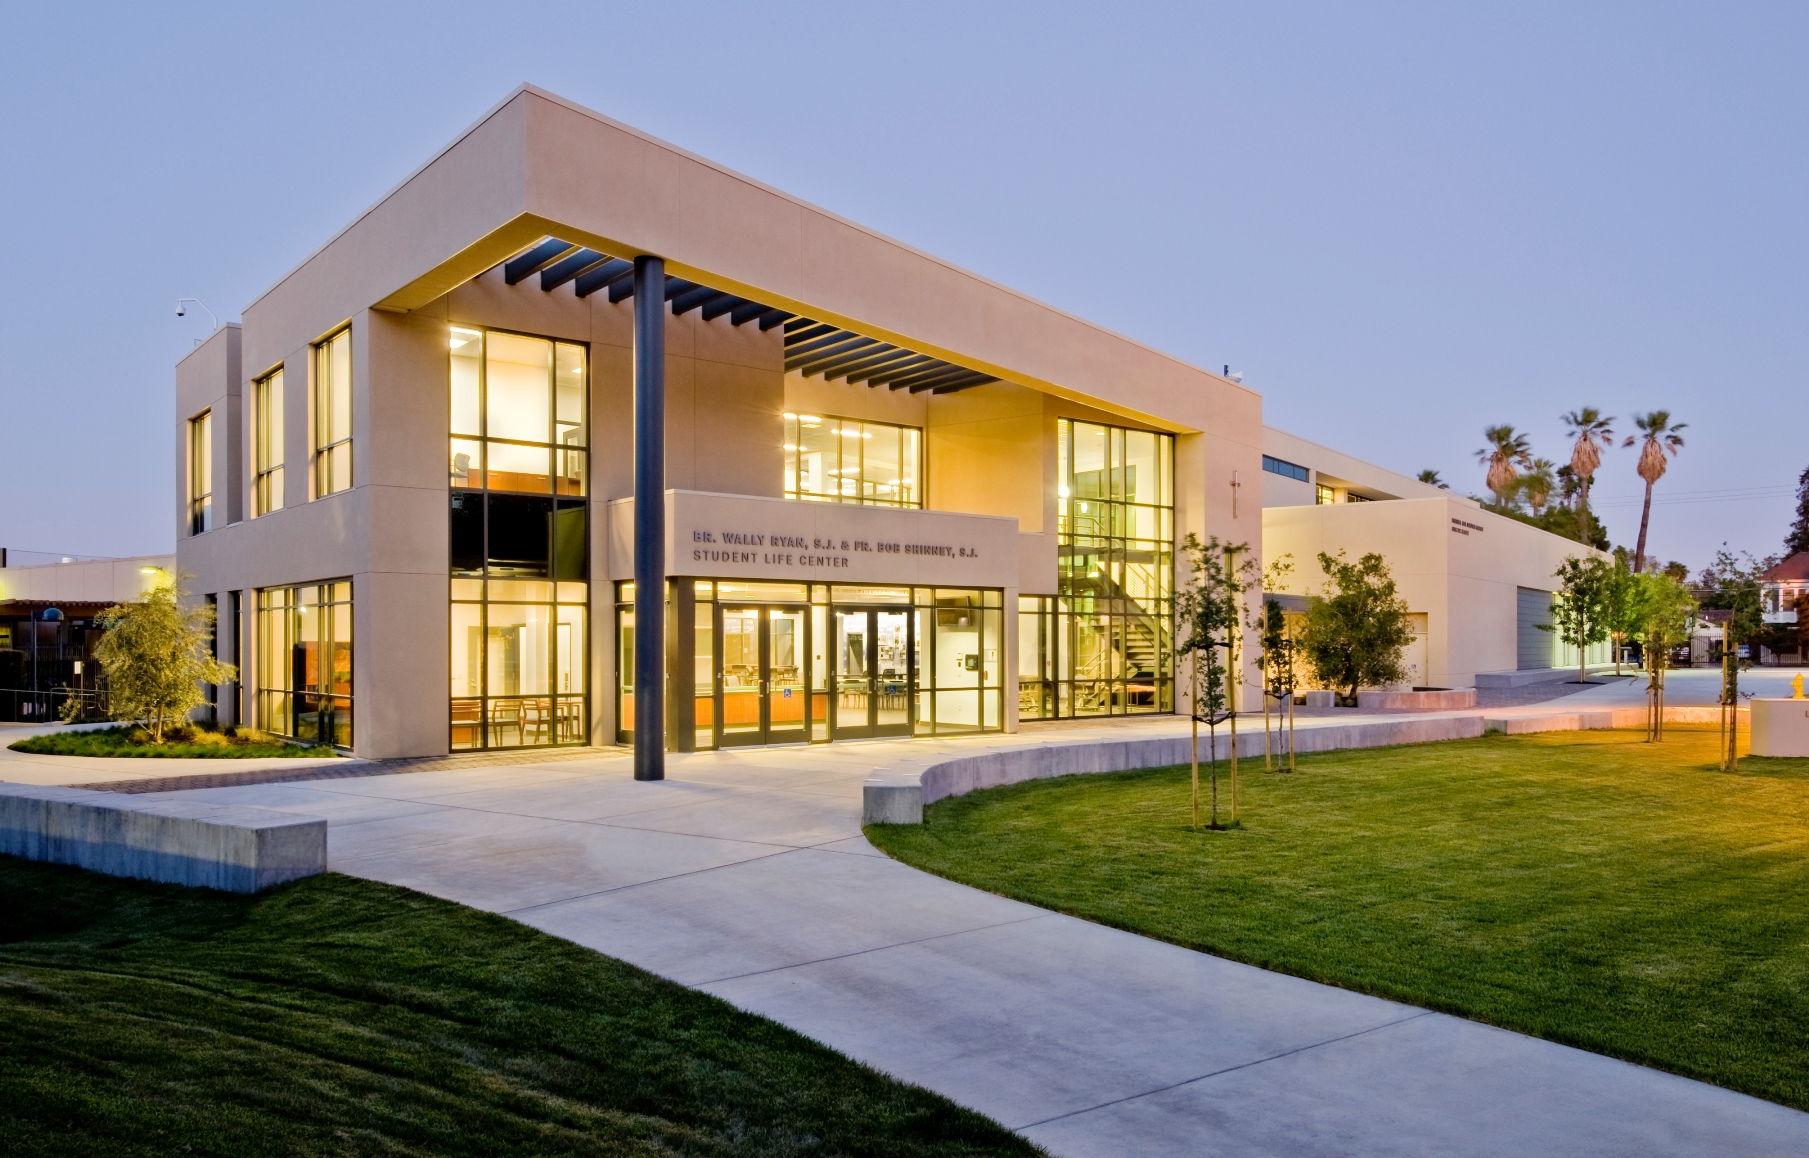 Image of Bellarmine College Preparatory, Auxiliary Gym And Student Life Center